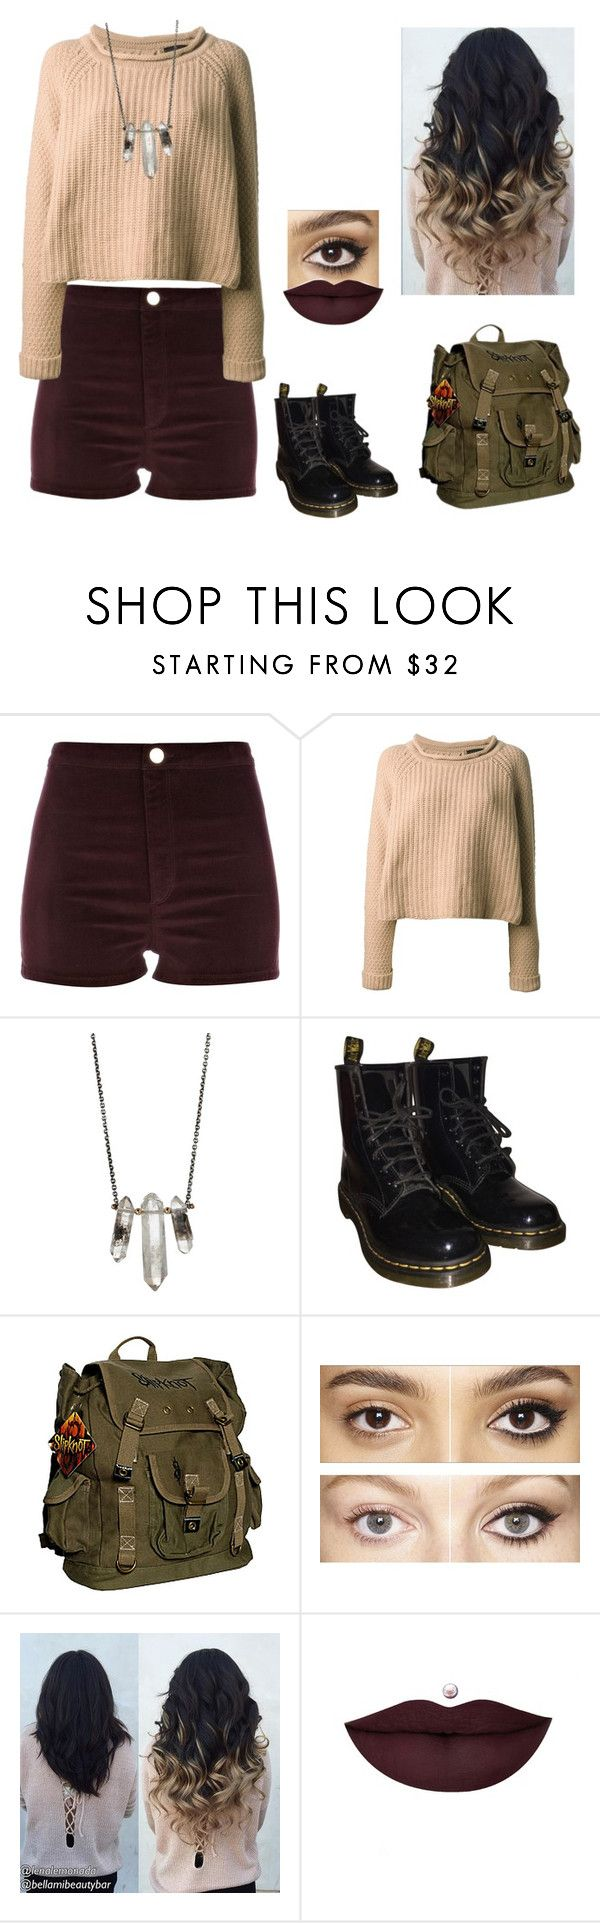 """""""Time to stop"""" by well-its-jess ❤ liked on Polyvore featuring River Island, Jo No Fui, ZoÃ« Chicco, Dr. Martens, Charlotte Tilbury and Anastasia Beverly Hills"""